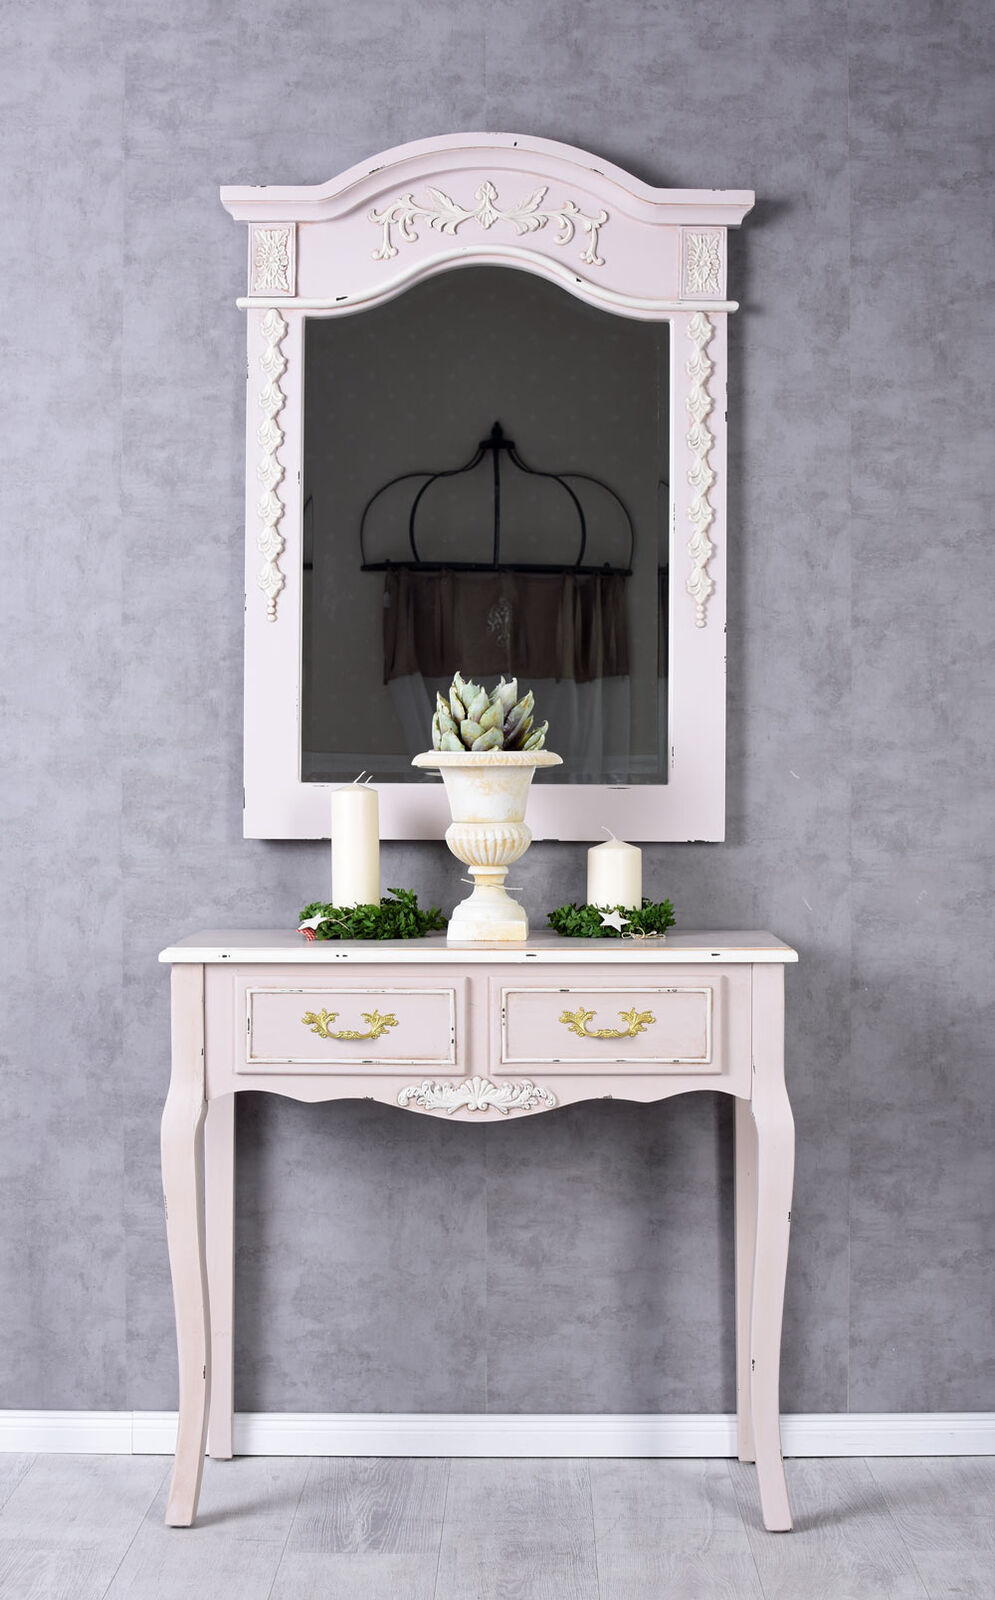 Console de table shabby mur style maison Campagne coiffeuse